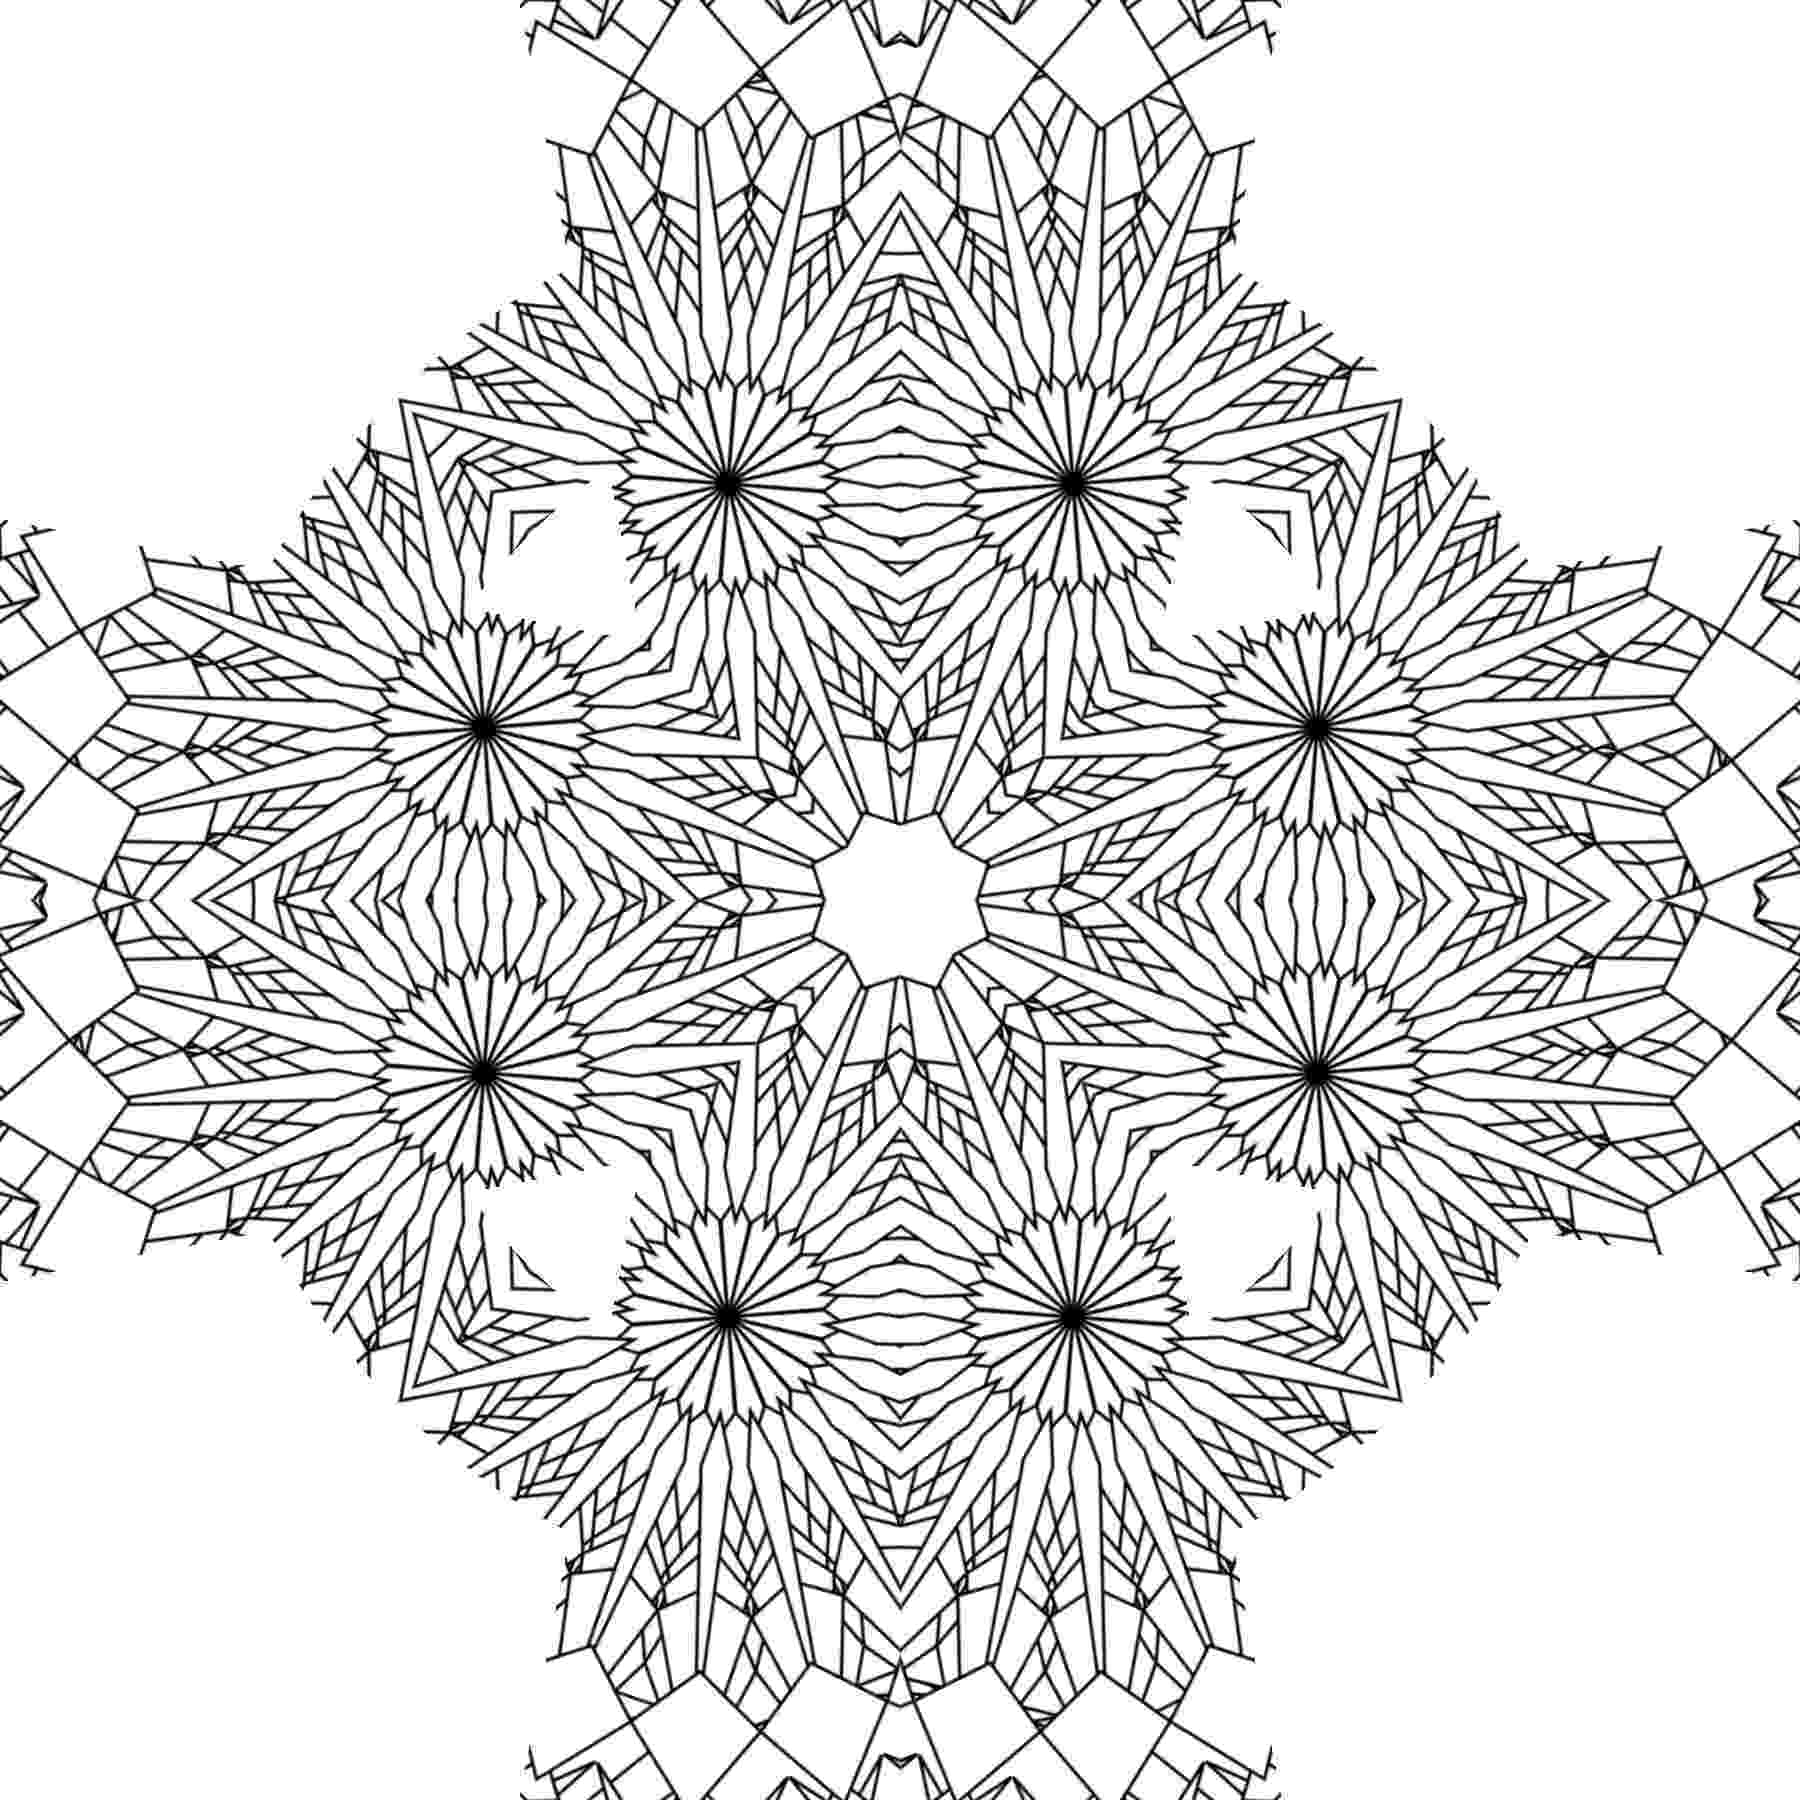 coloring pages patterns free printable abstract coloring pages for adults patterns pages coloring